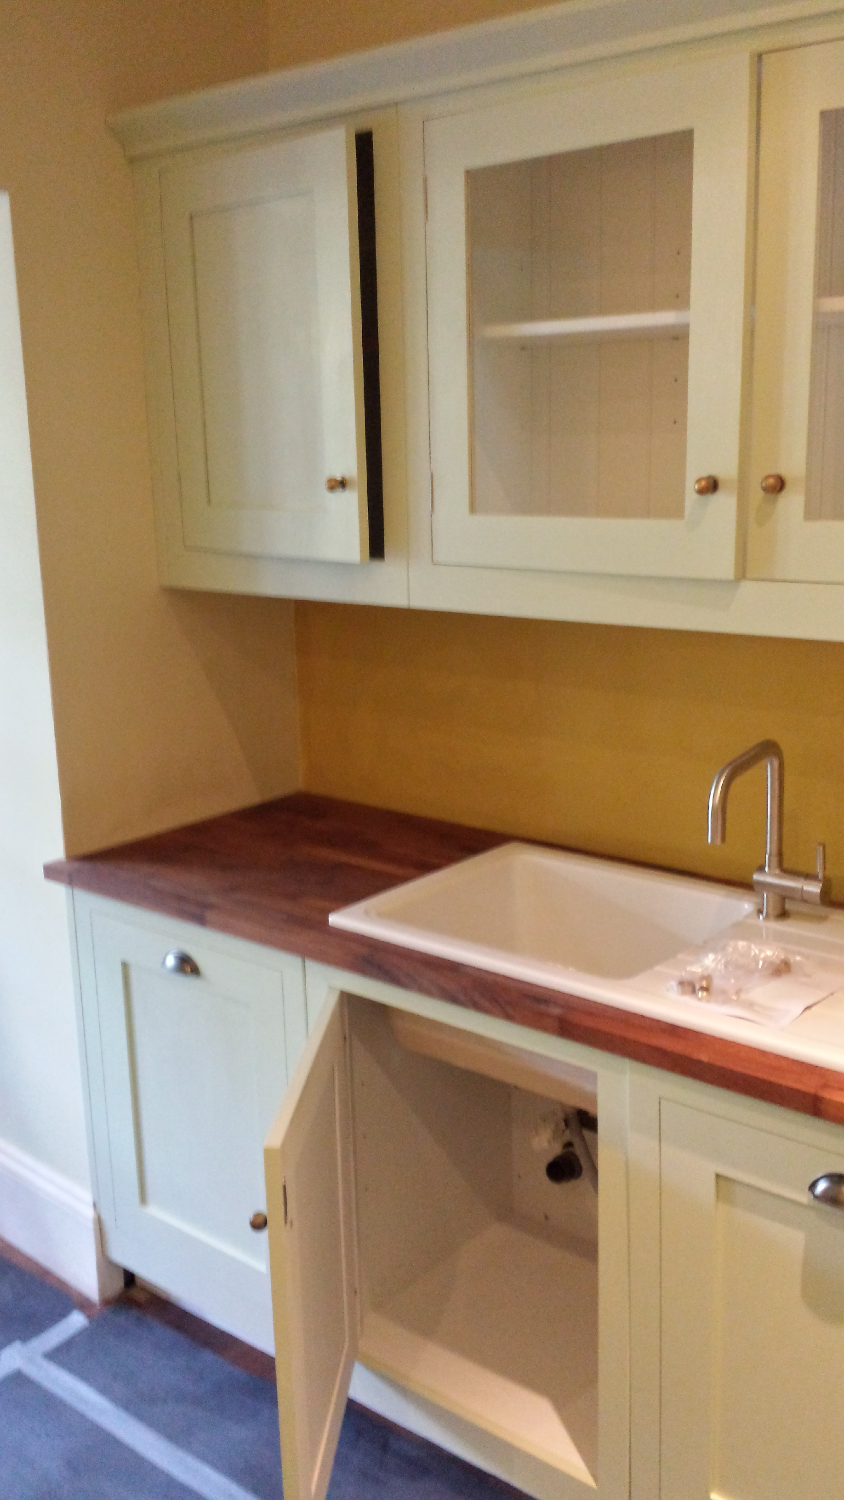 Fitting Worktop and Sink, London